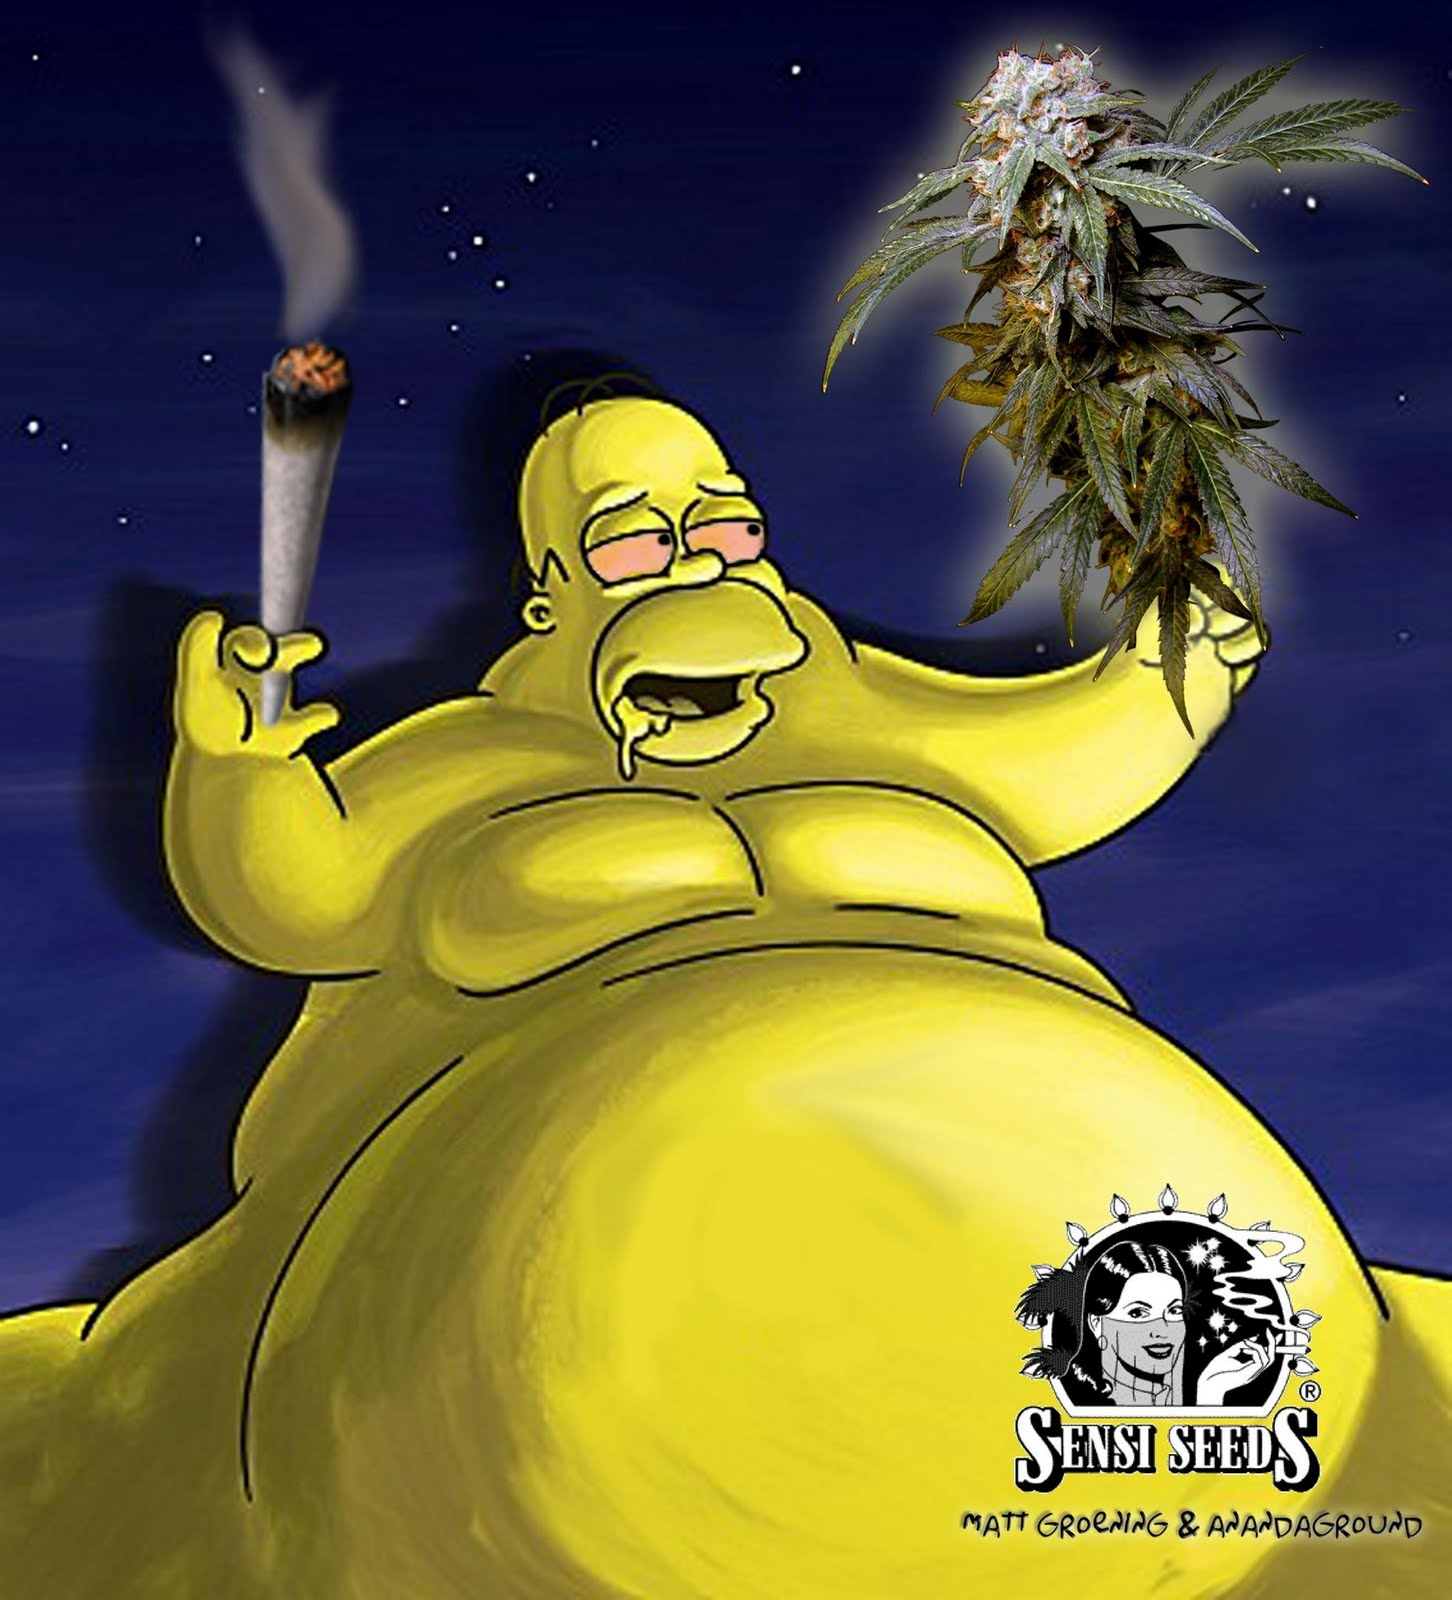 HOMER SIMPSONS: Homer gordo y fumando marihuana!!